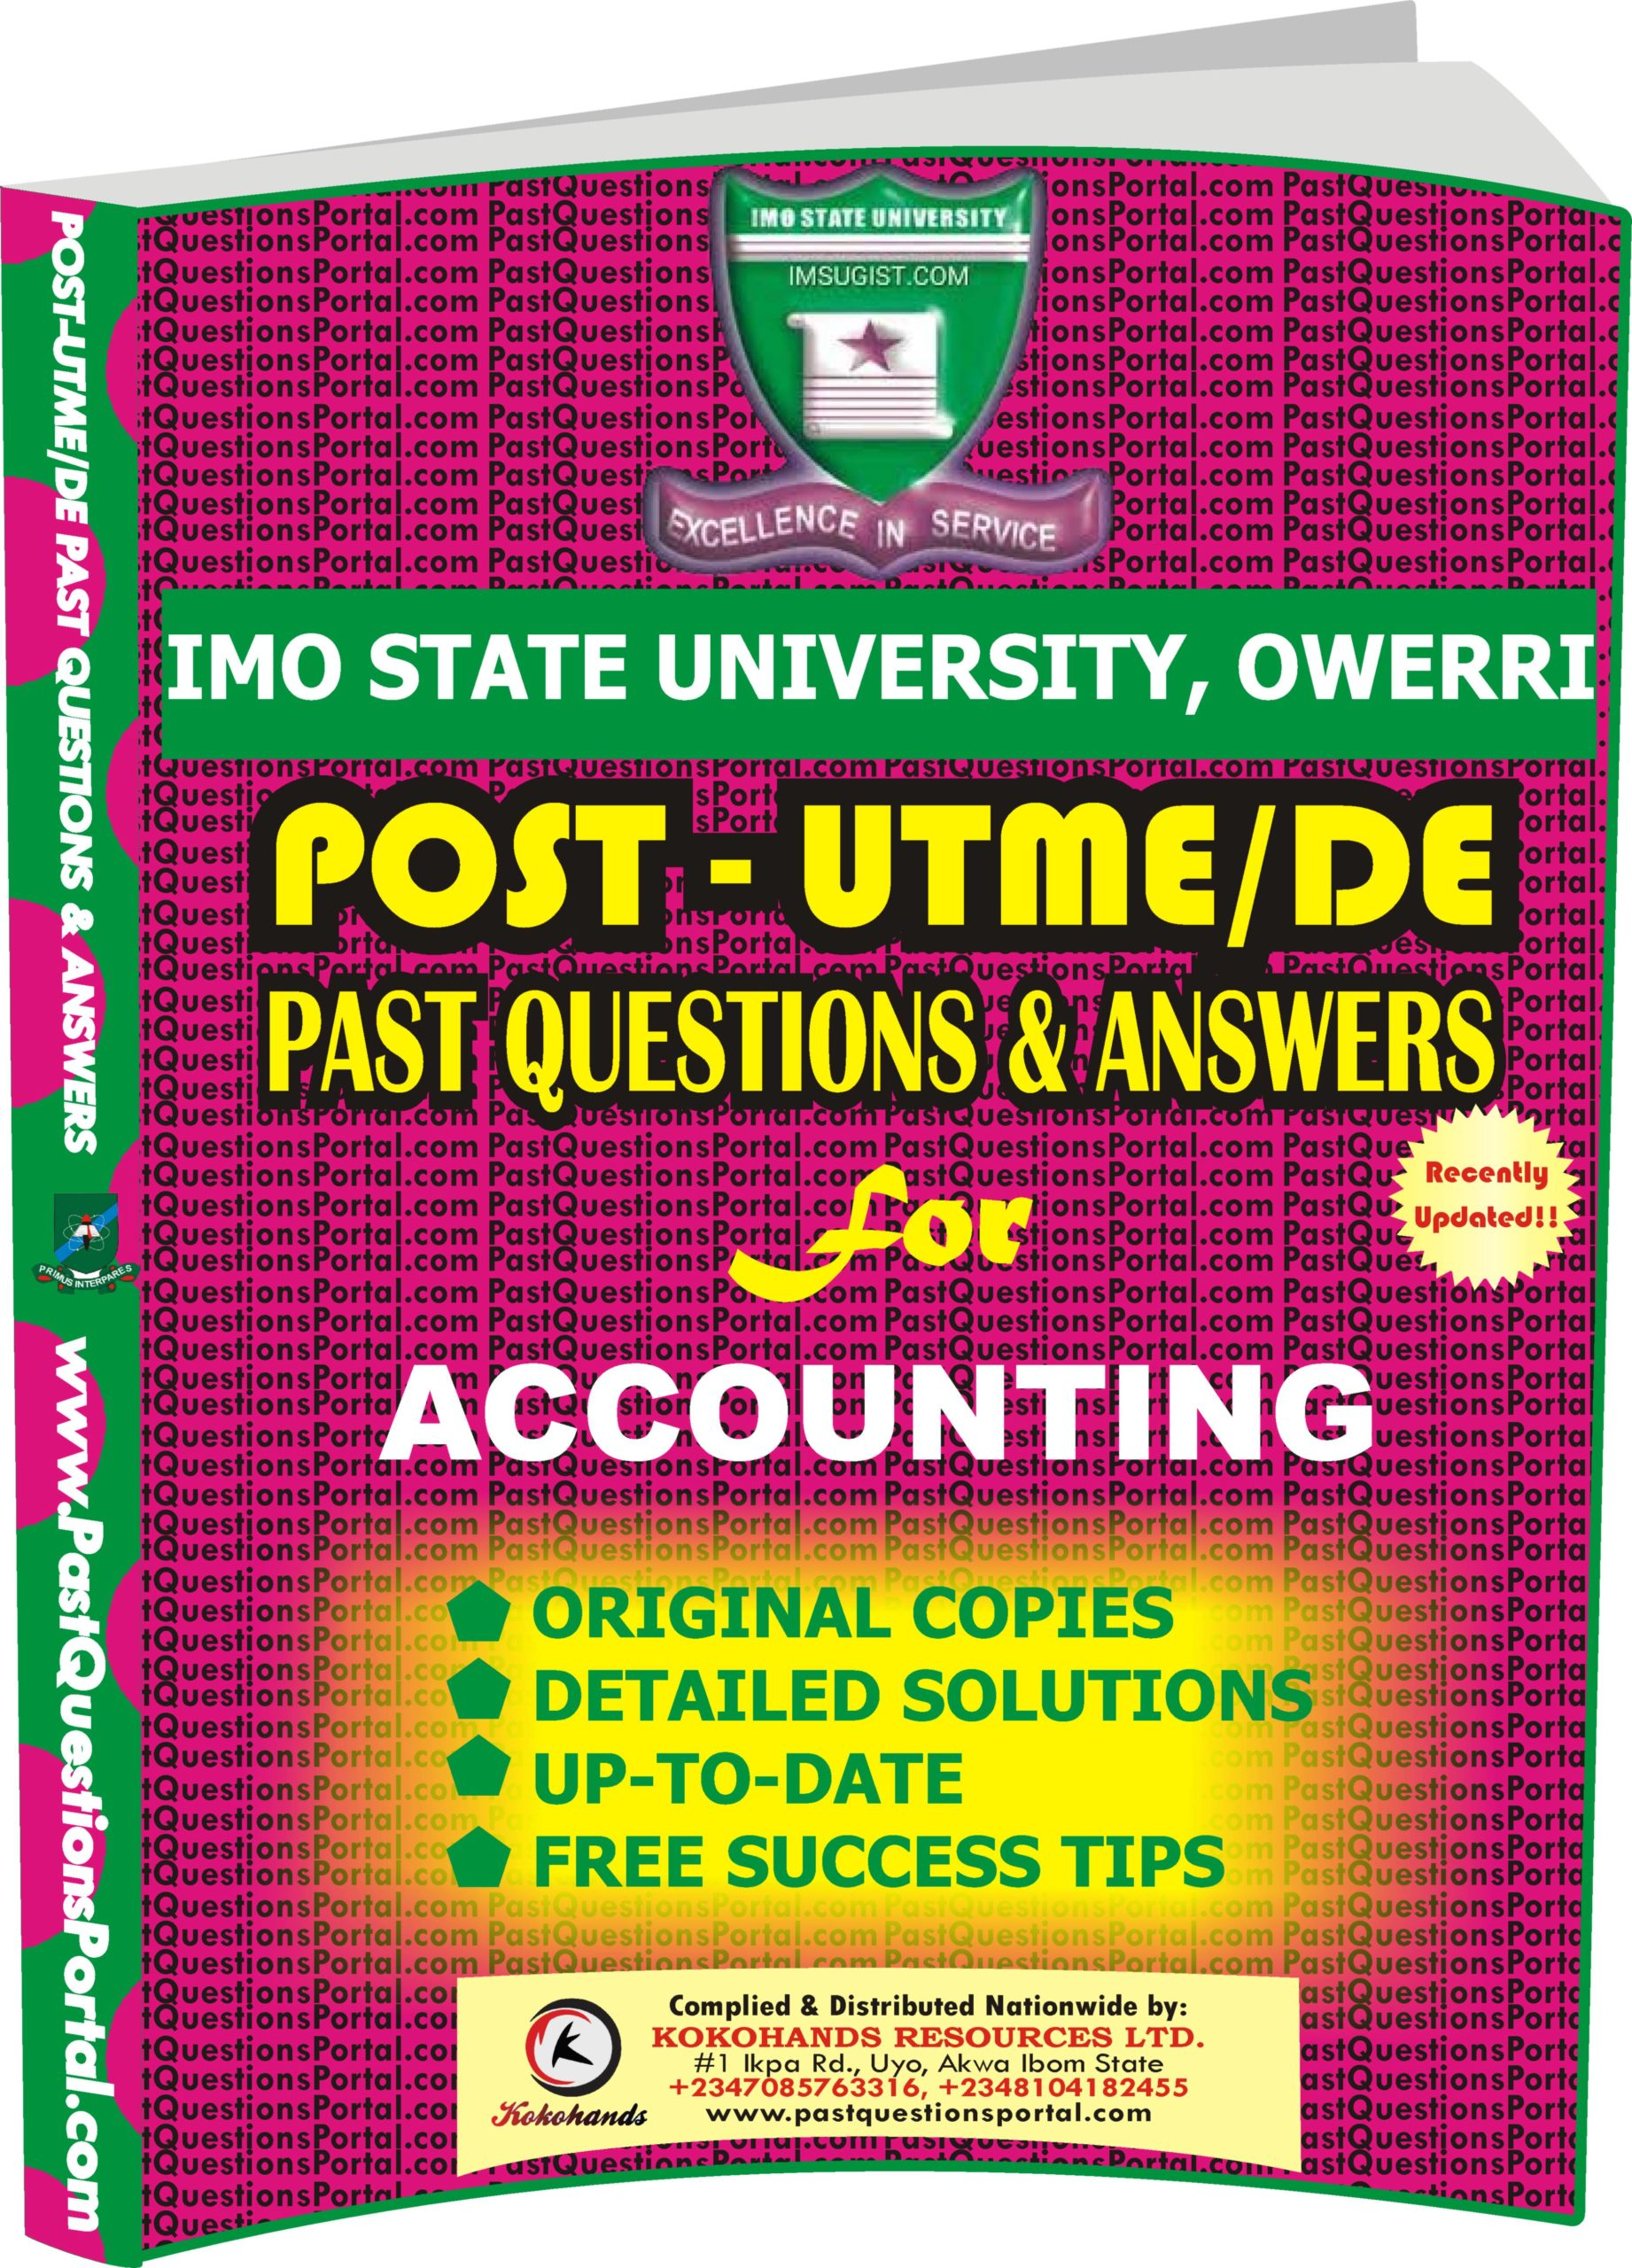 IMSU Post UTME Past Questions for ACCOUNTING